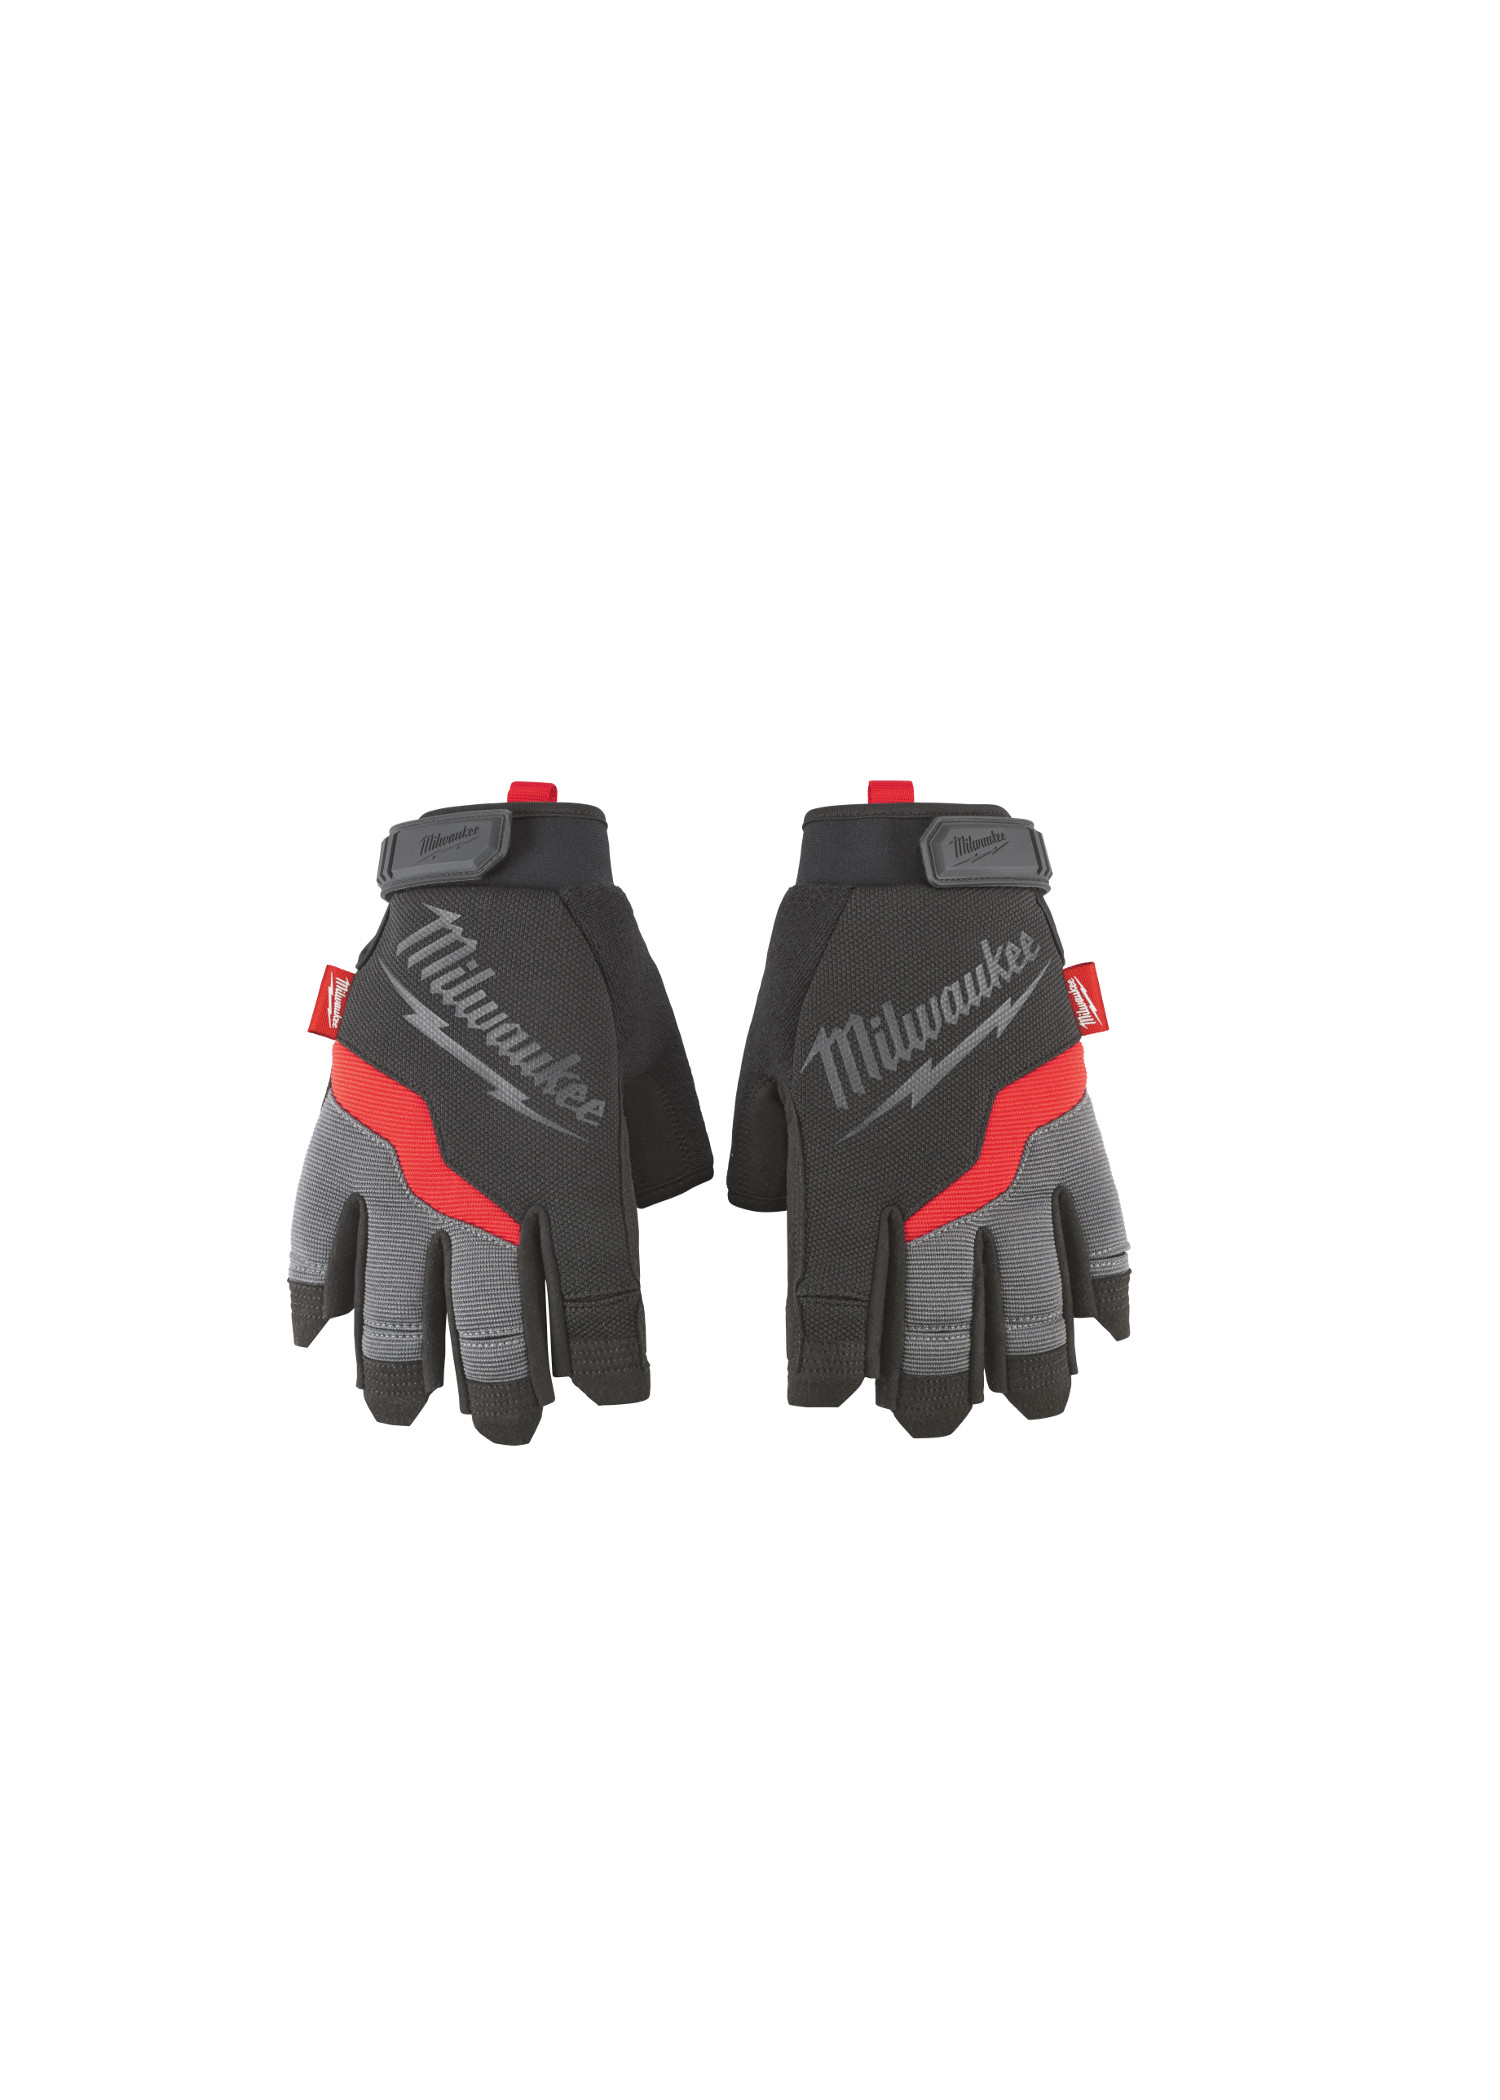 Milwaukee® 48-22-8741 Demolition Fingerless General Purpose Work Gloves, M, Black/Red, High Dexterity Finger Tip, Synthetic Leather